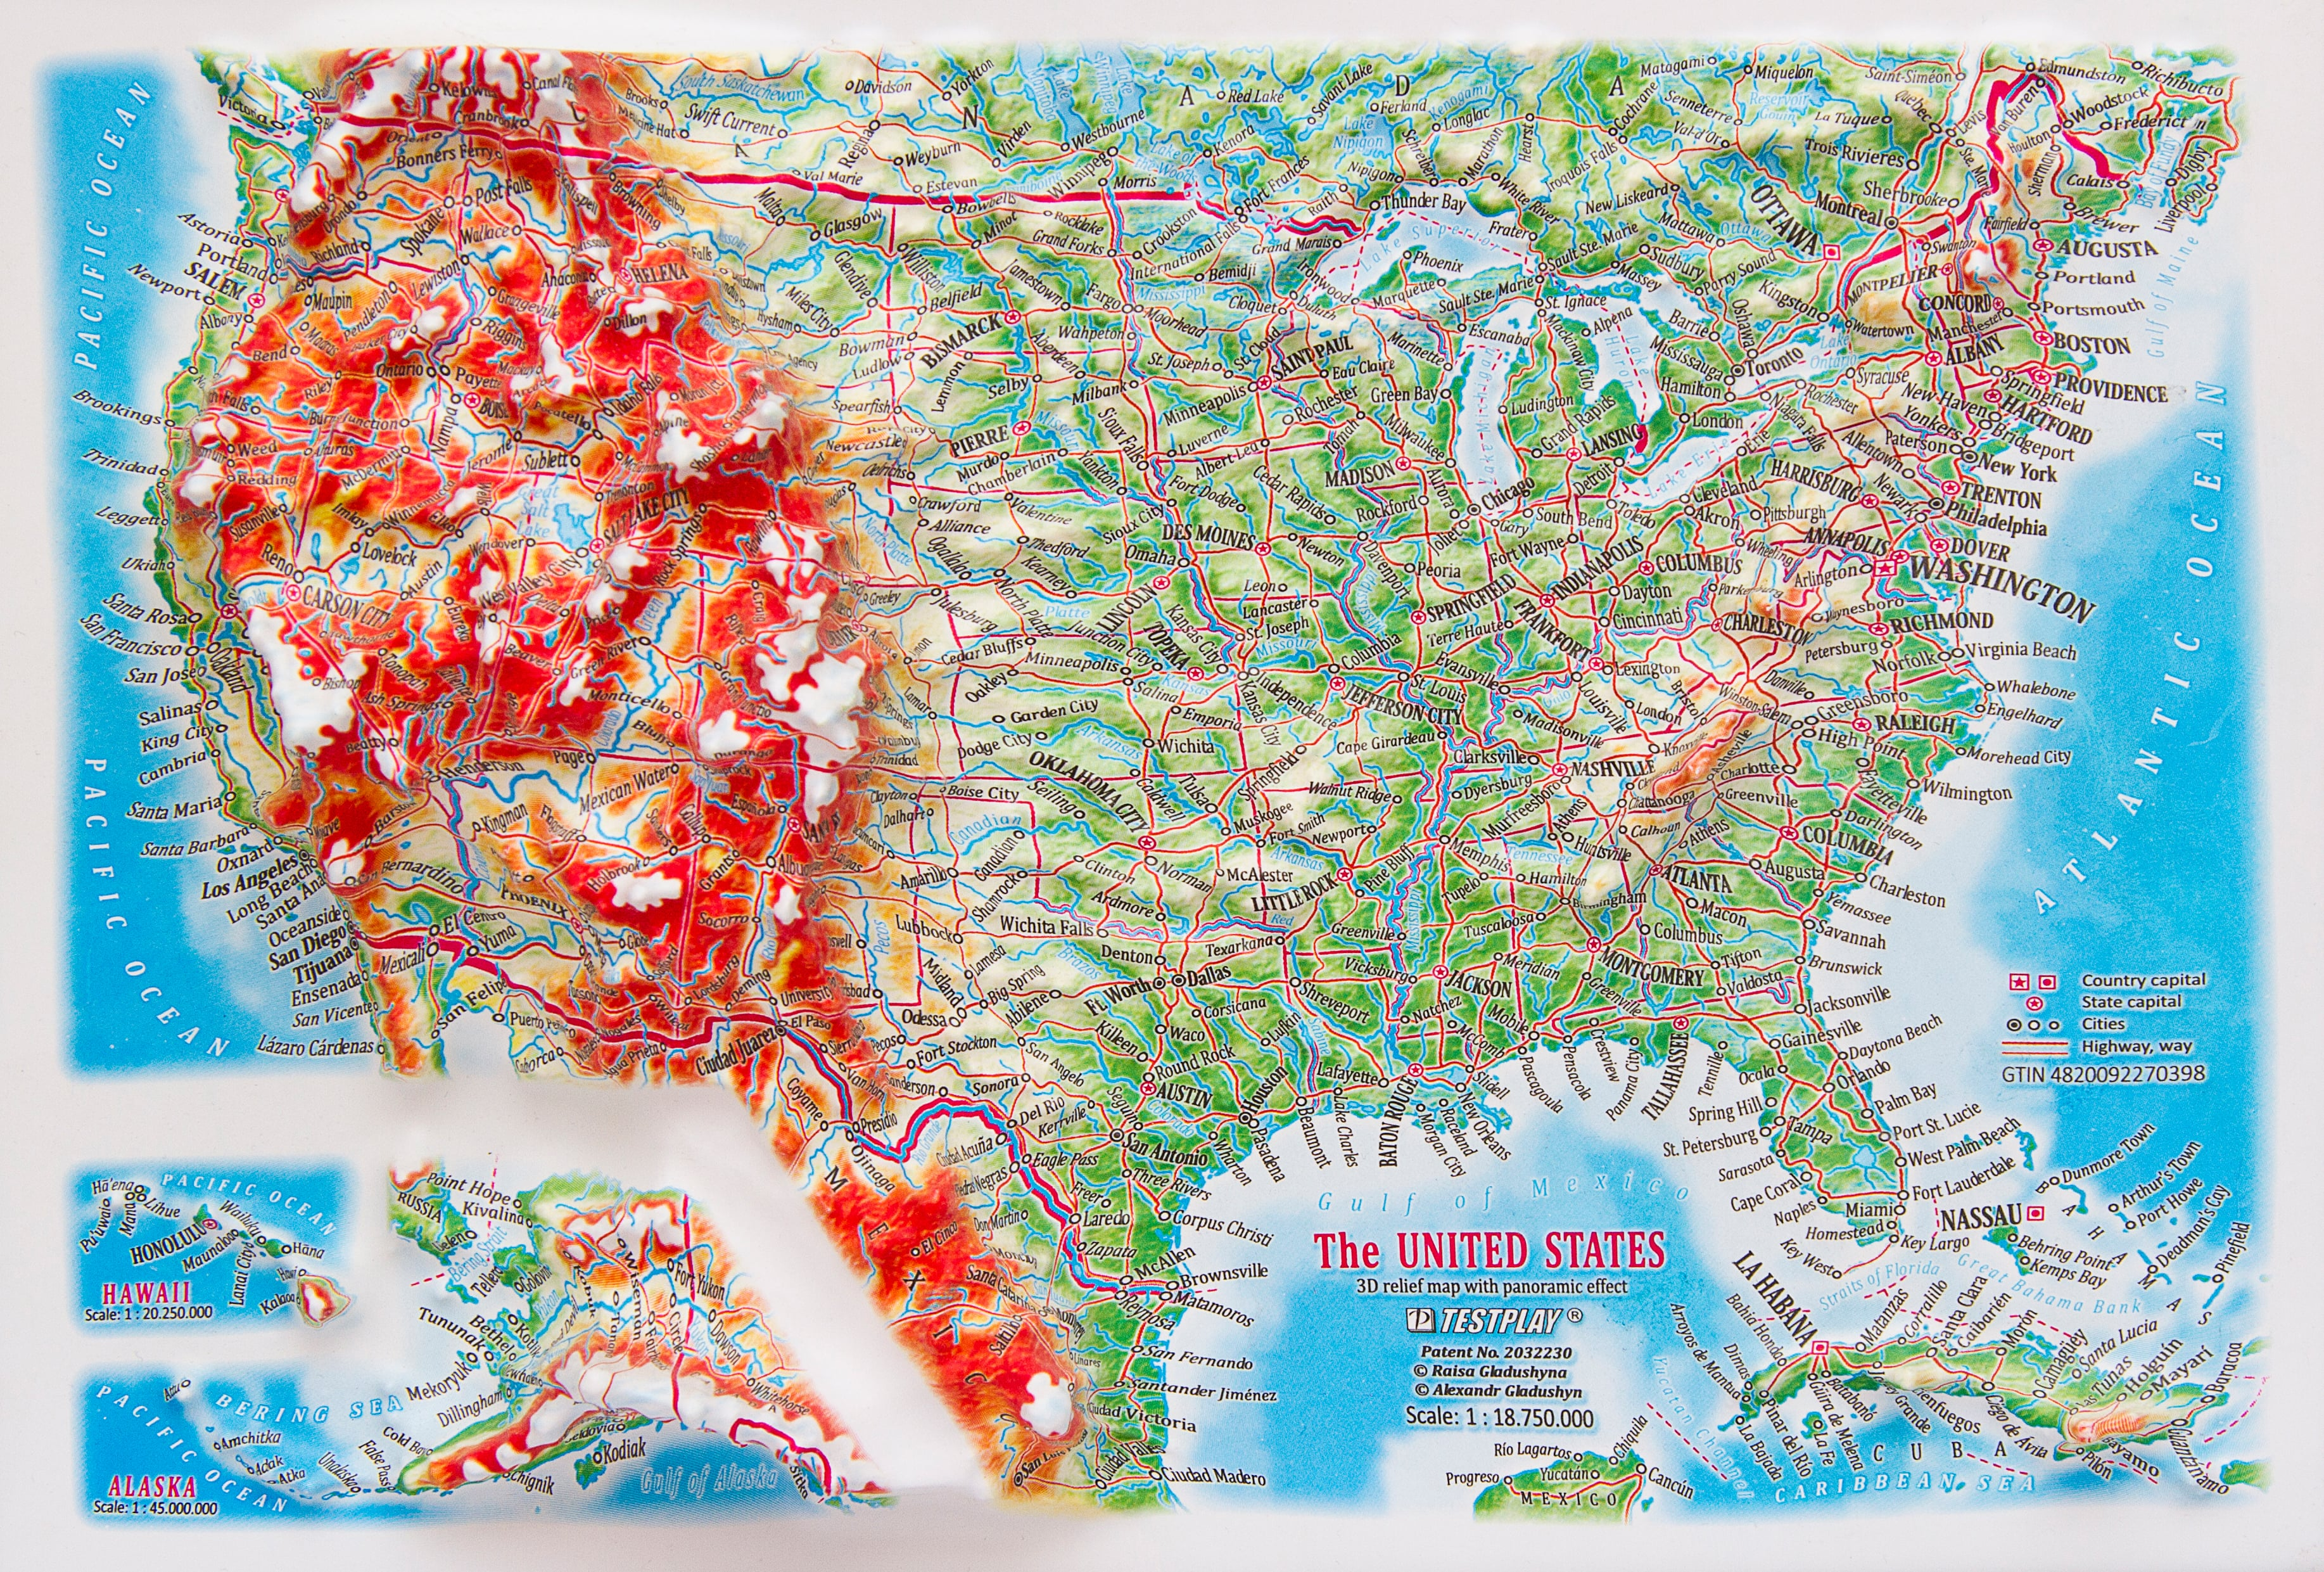 3D Relief Panoramic Map USA in A4 size on map in us, map of usa, delaware usa, rhode island usa, map tx usa, map nw usa, world map usa, map with title, map from mexico, map maine usa, map for us, map se usa, map in india, map sw usa, map los angeles usa, google maps usa, map in europe, map of missouri and bordering states, map or usa, map af usa,